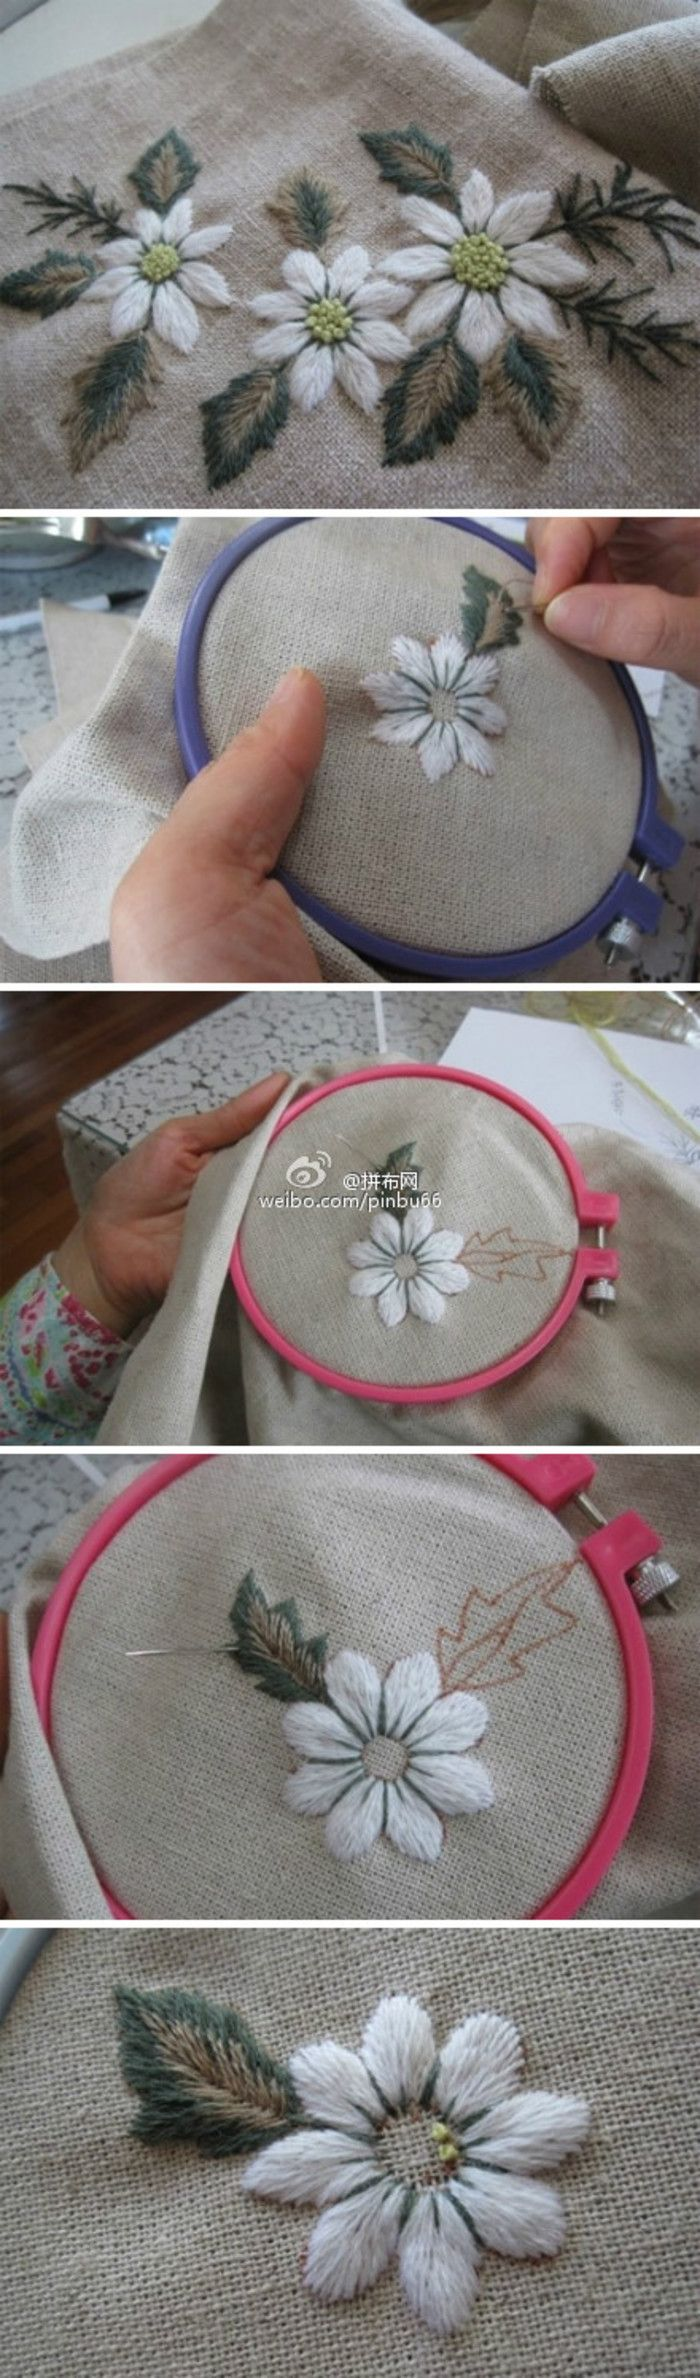 Overlapping leaf color embroidery method  translate page